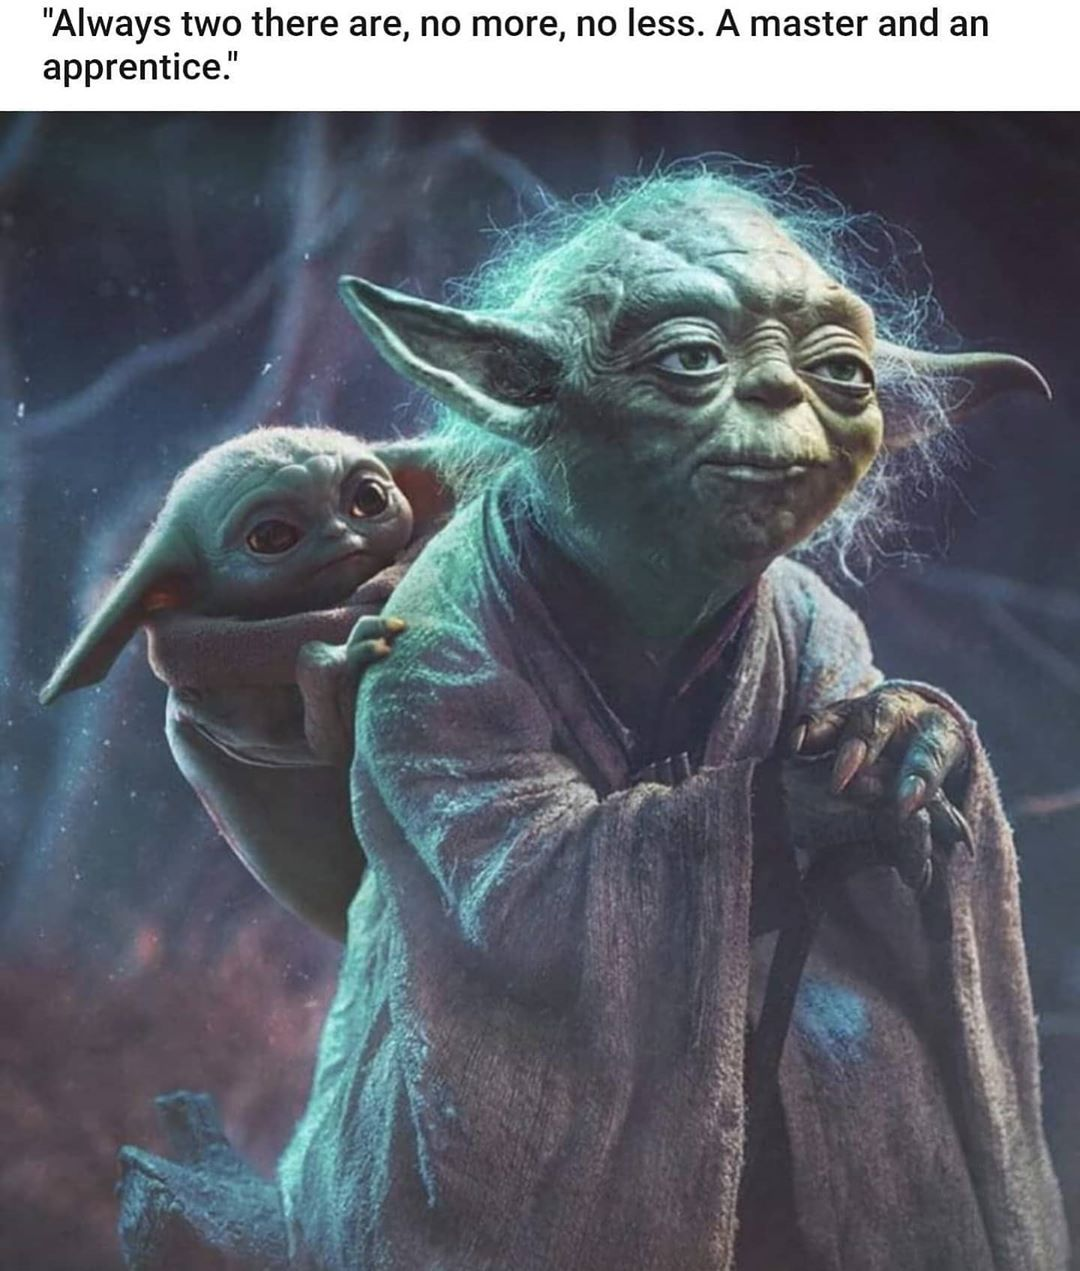 Baby Yoda On Instagram Always Two There Are Follow Babyyoda I Am For More Cuteness Share Baby Yod Star Wars Pictures Star Wars Images Star Wars Background